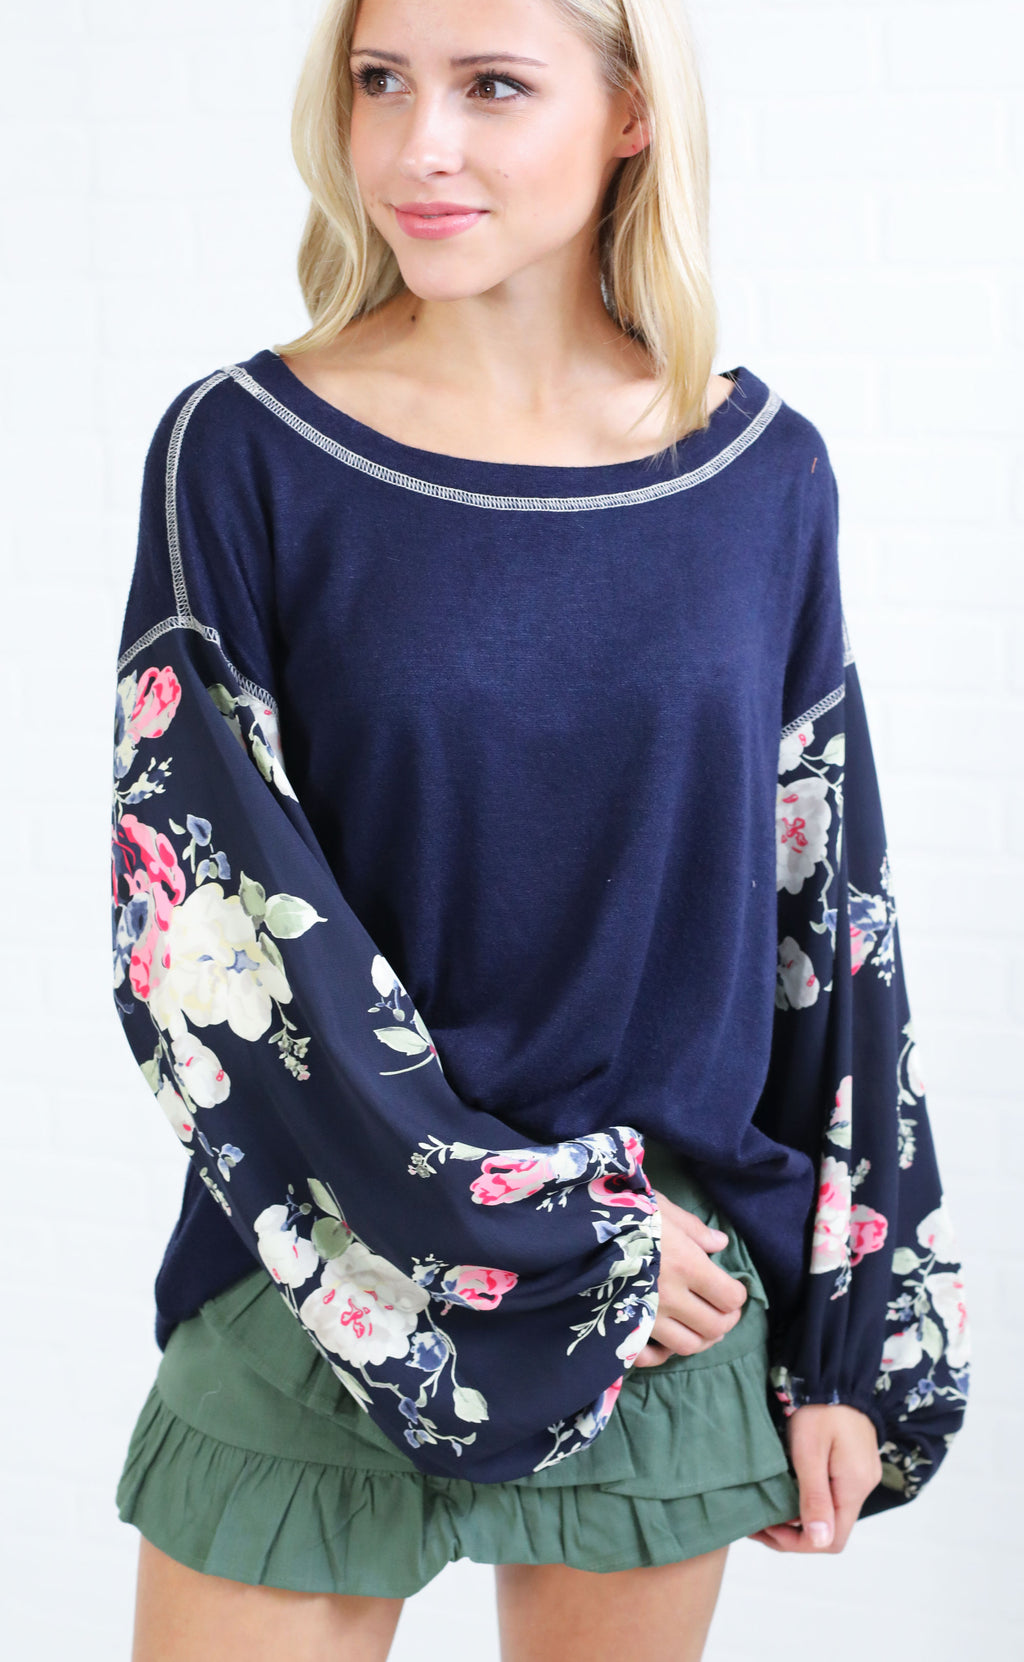 floral frenzy printed top - navy